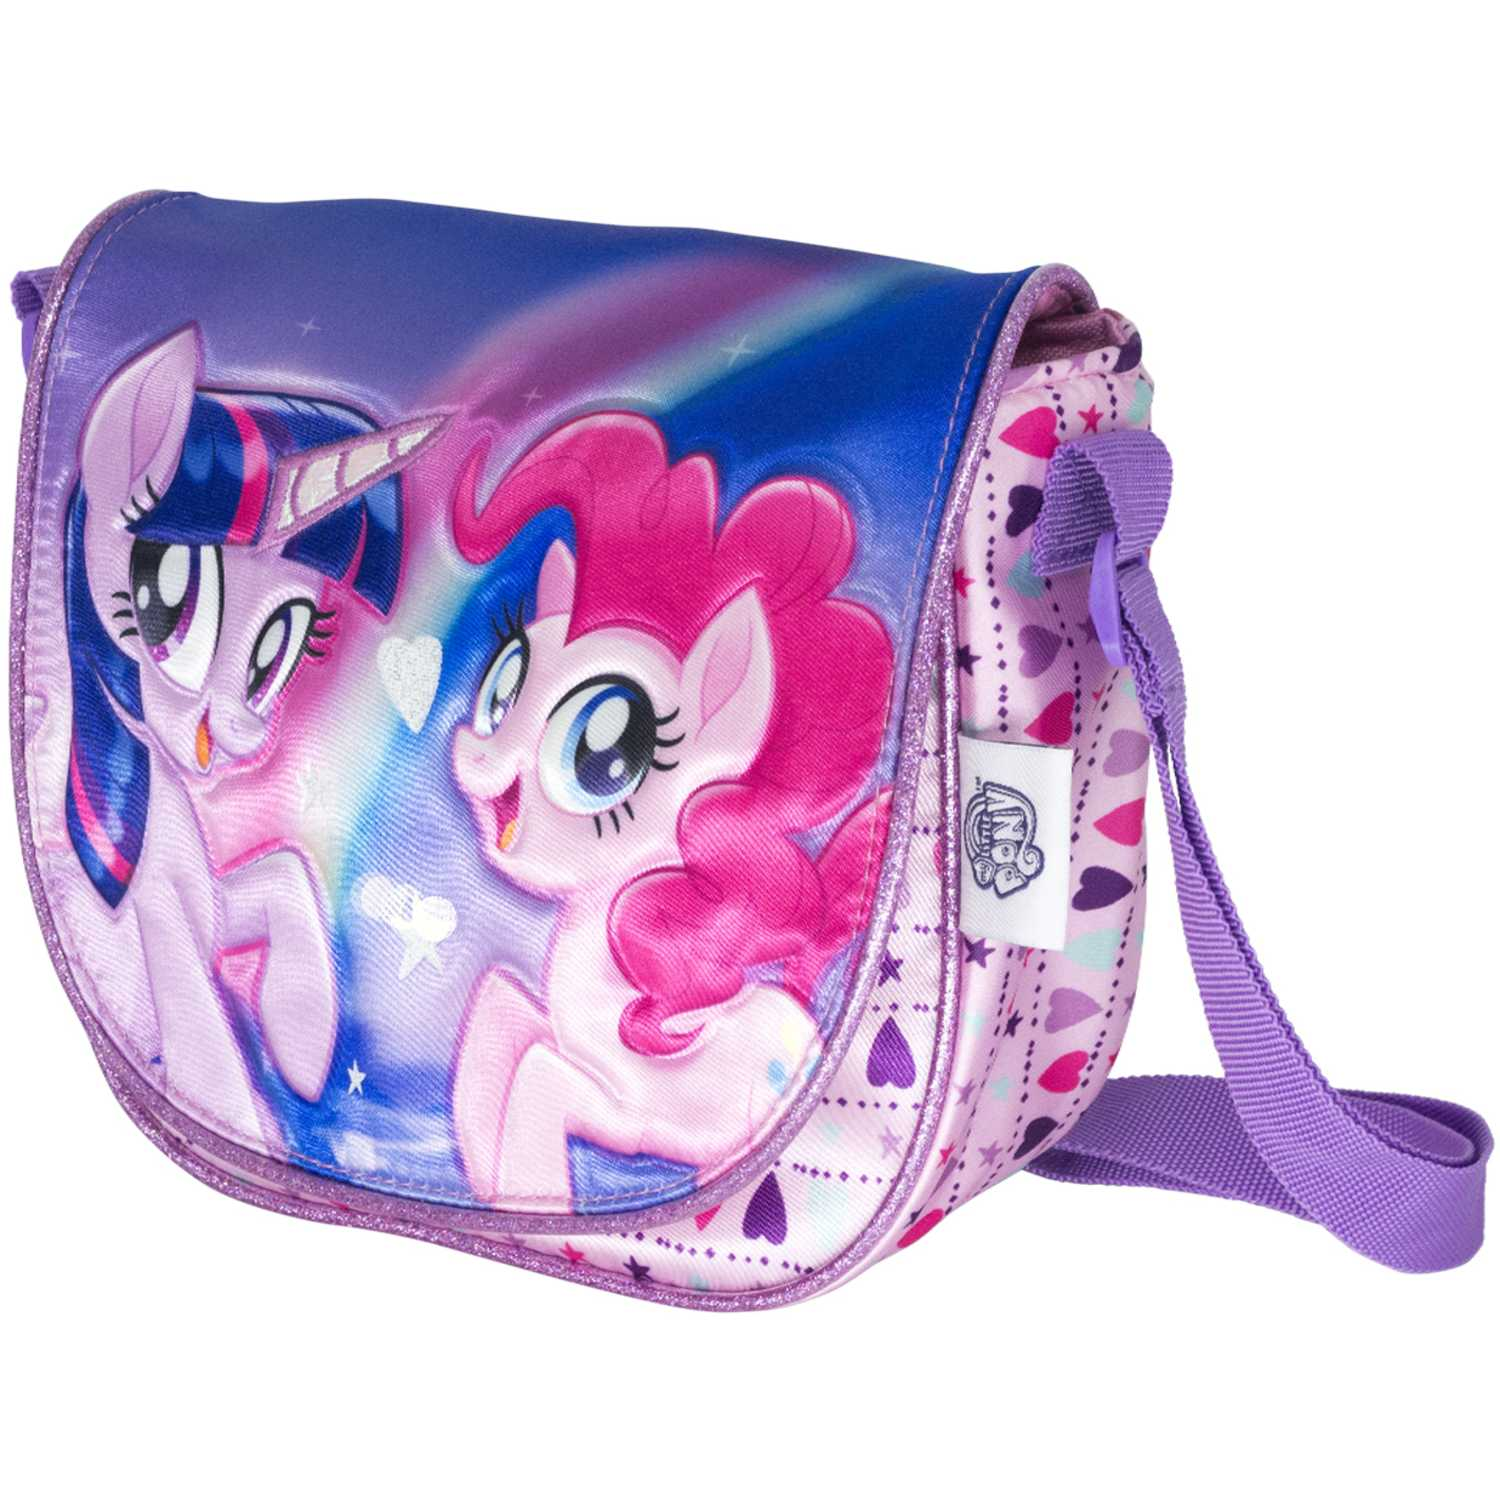 My Little Pony cartera my little pony Rosado Bolsos tipo Mensajero